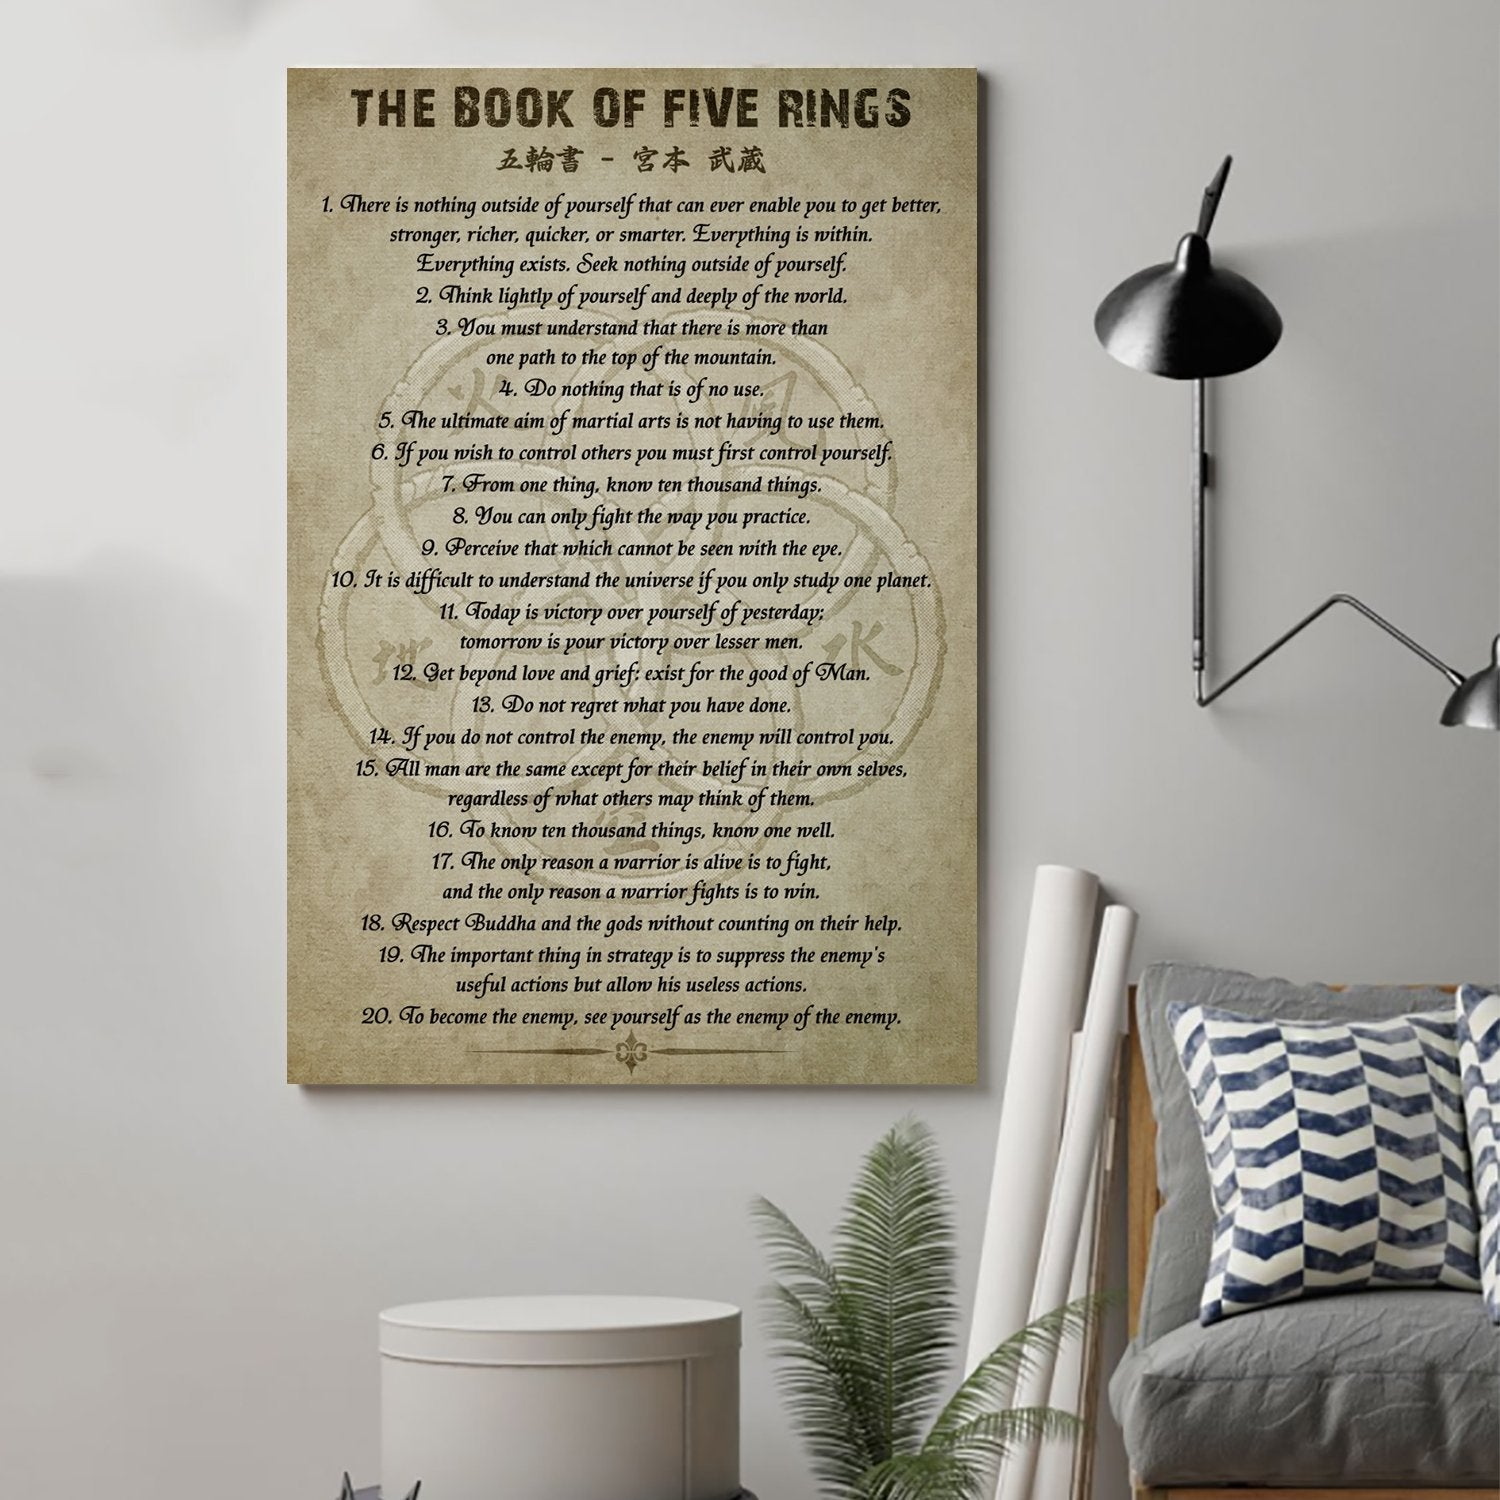 (cv35) Samurai Poster - the book of five rings